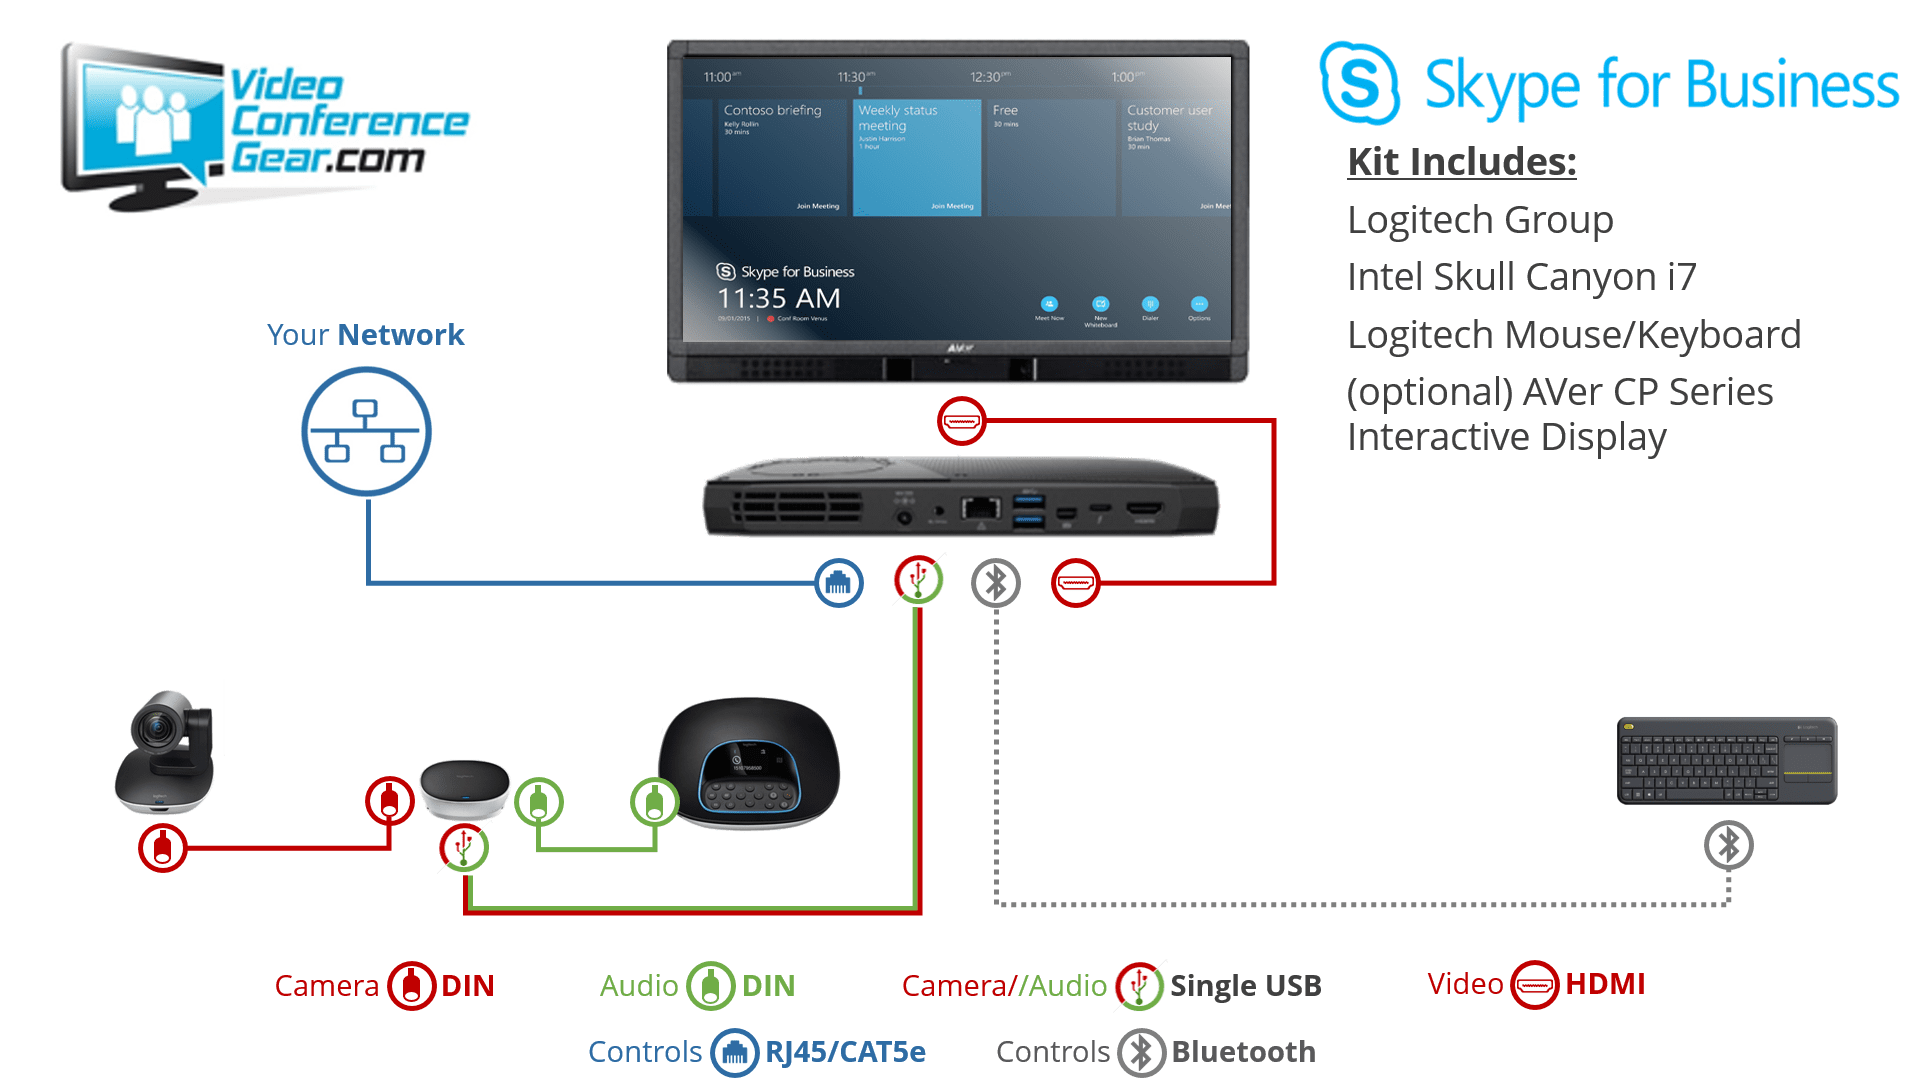 Skype for Business Logitech Group Kit